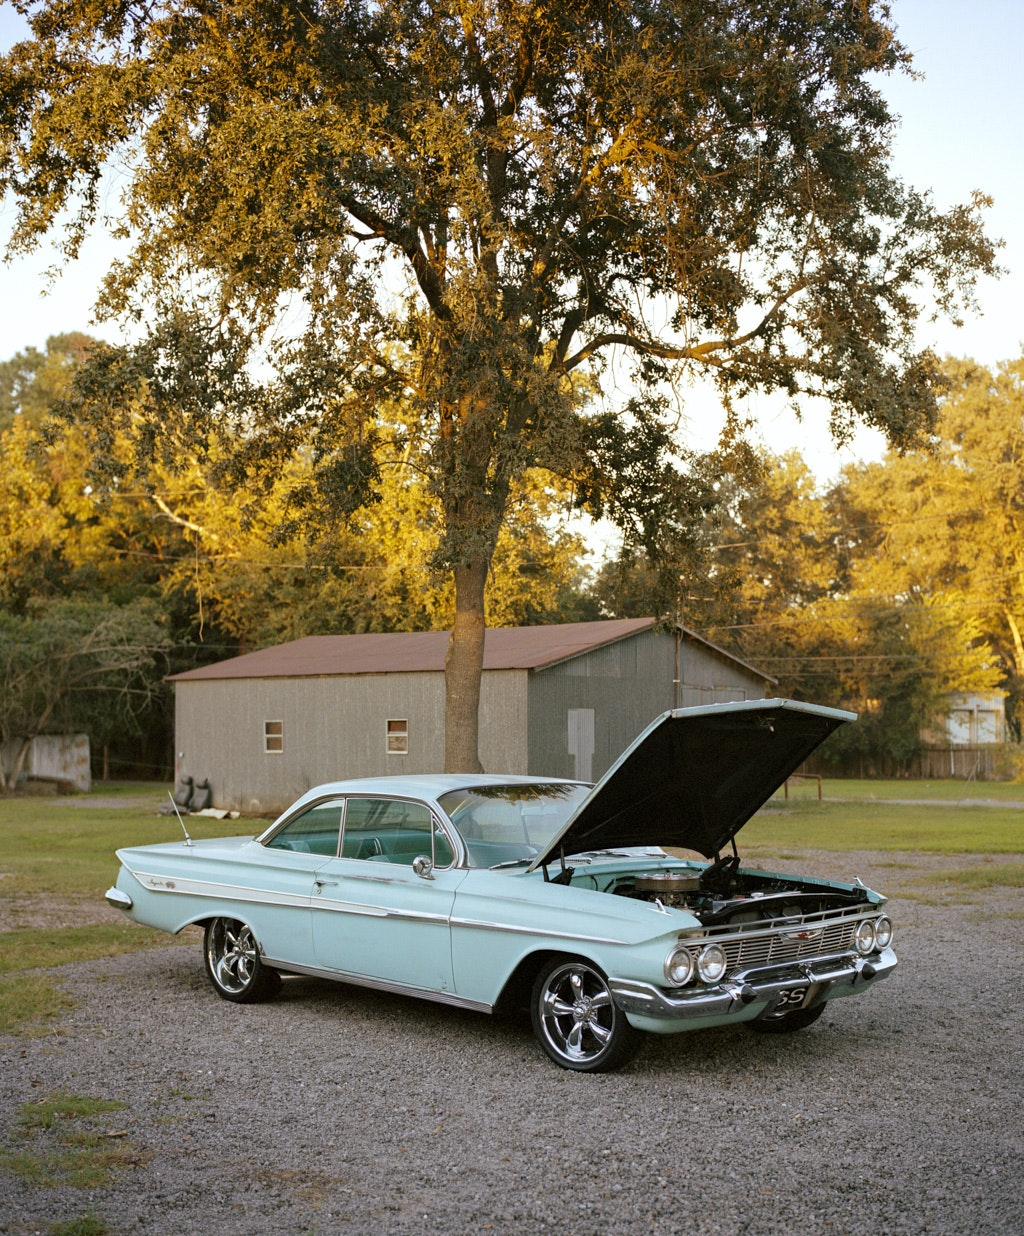 The 1961 Chevy Impala, pictured above in New Orleans, Louisiana, was once the best-selling automobile in the United States.